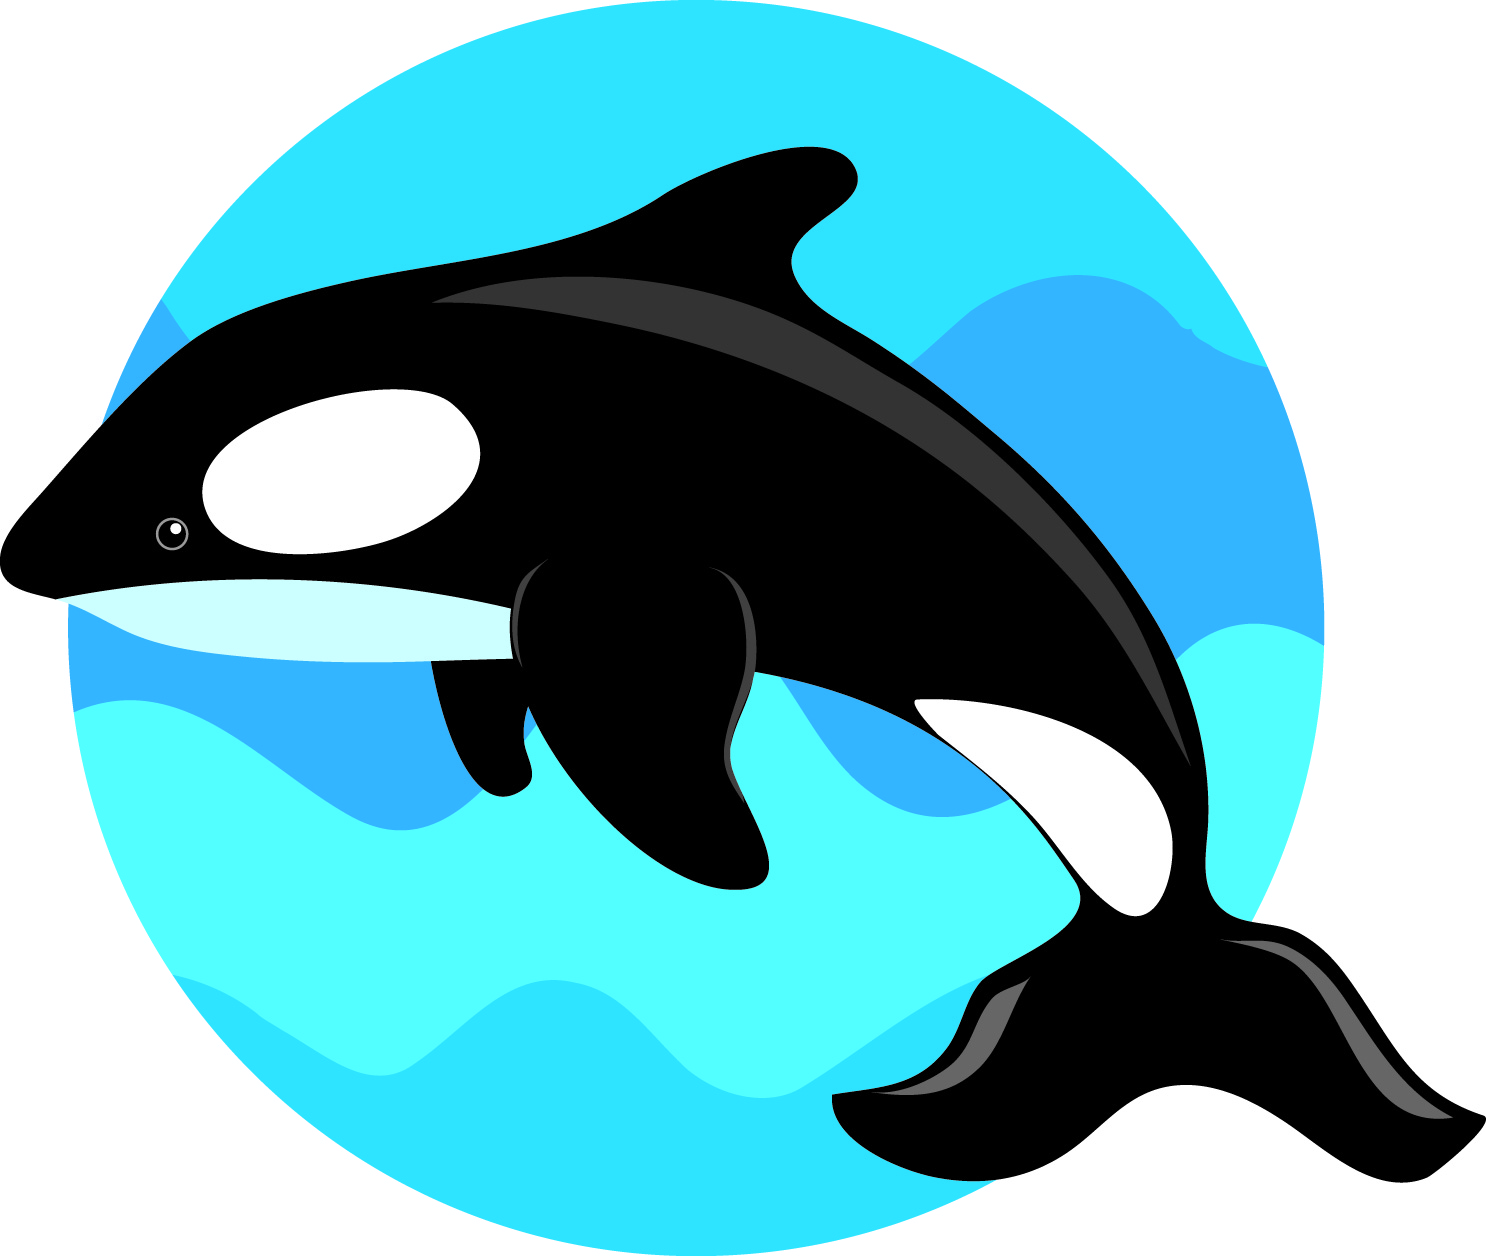 1486x1256 Exploit Cartoon Pictures Of Whales Energy Whale Png Clip Art Image